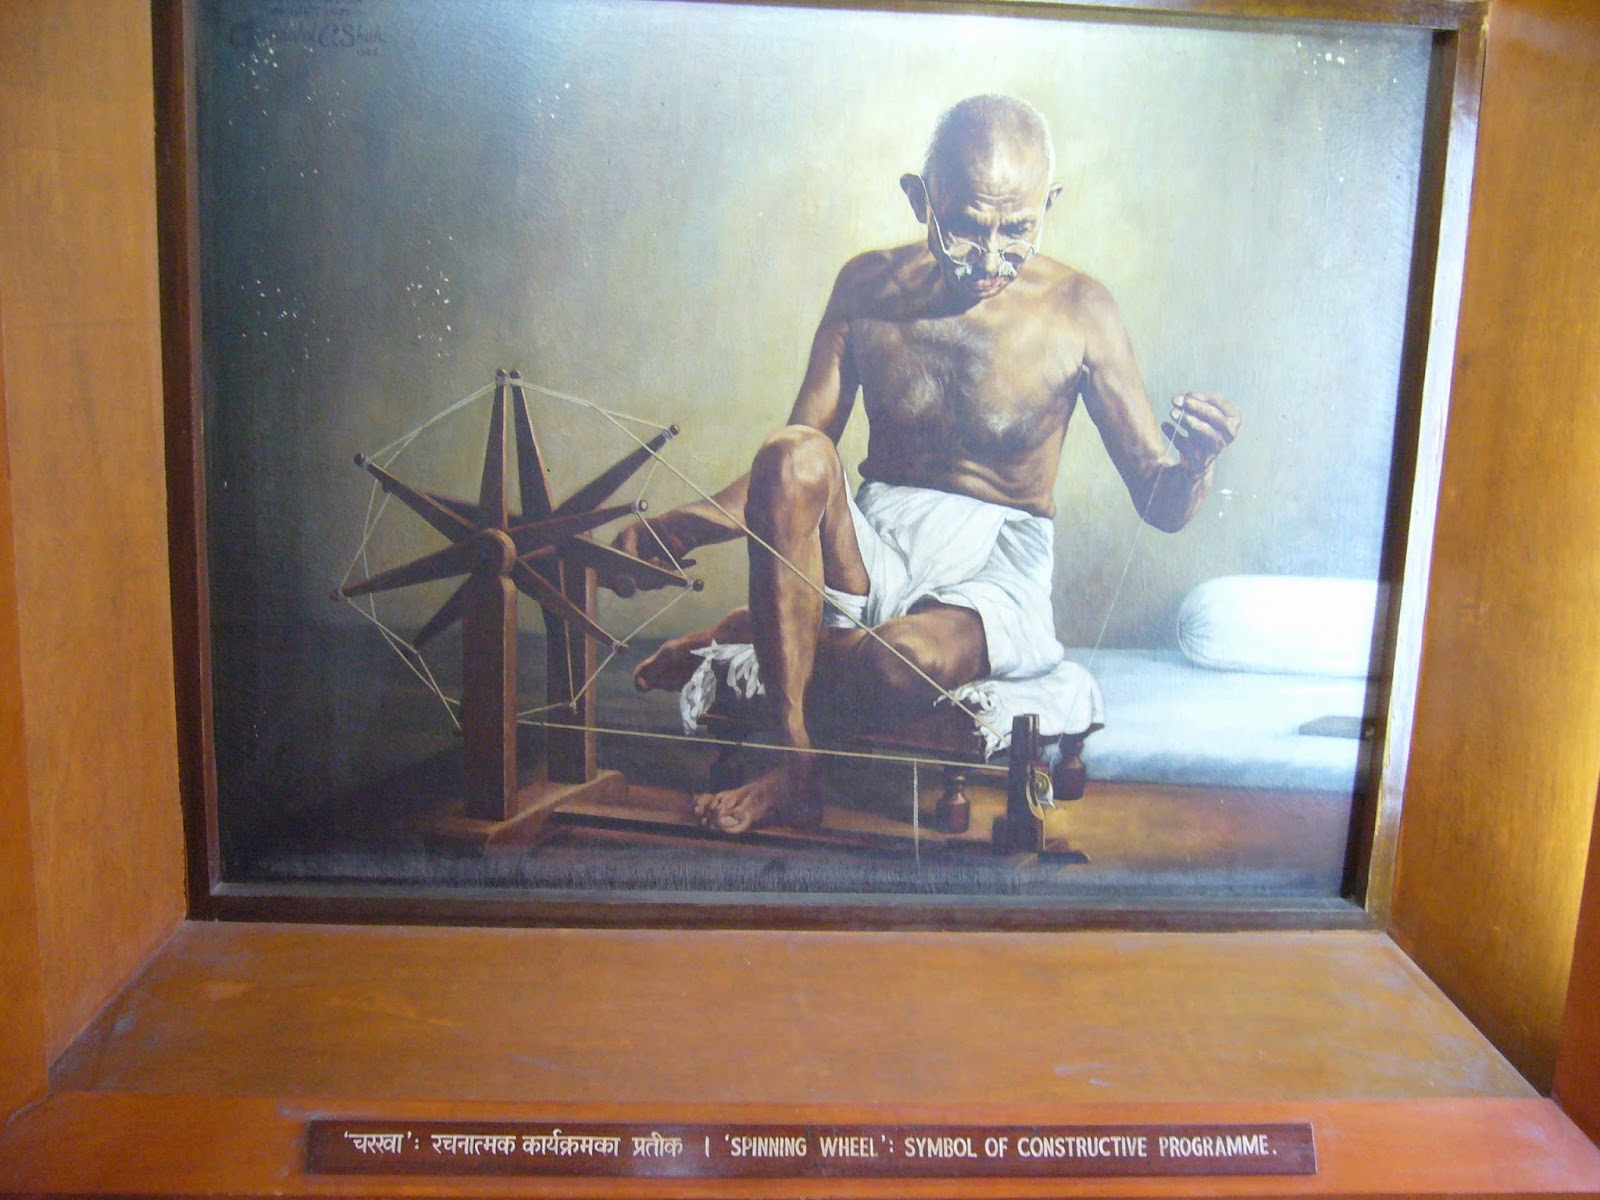 Mahatma Gandhi and Charkha